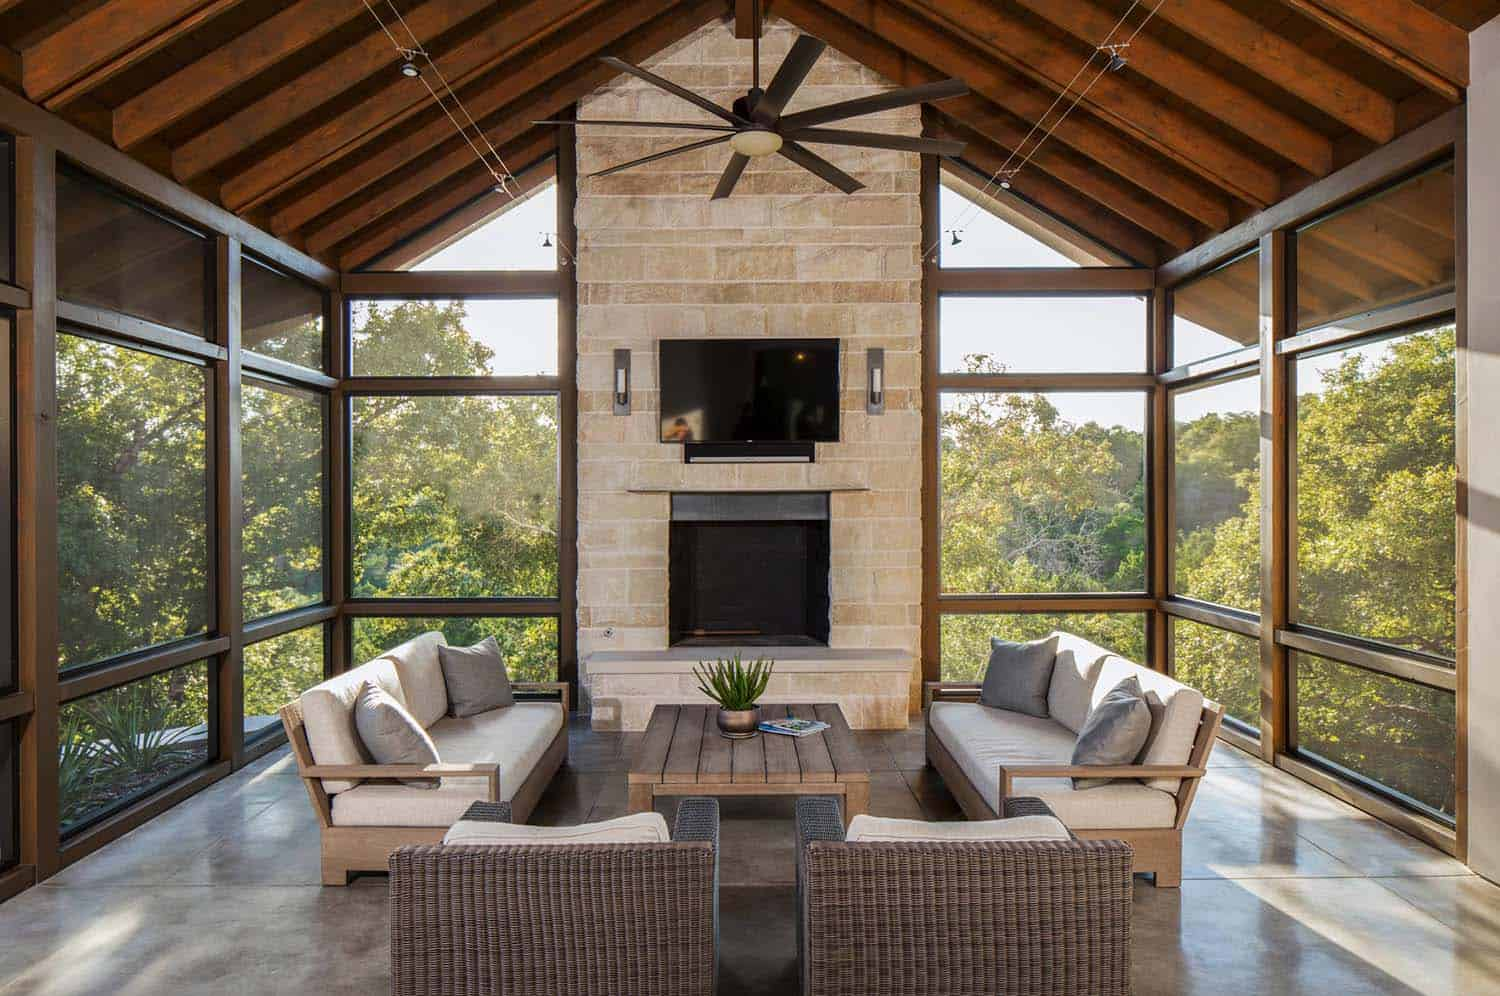 Screened Porch And Patio Ideas : Amazingly cozy and relaxing screened porch design ideas